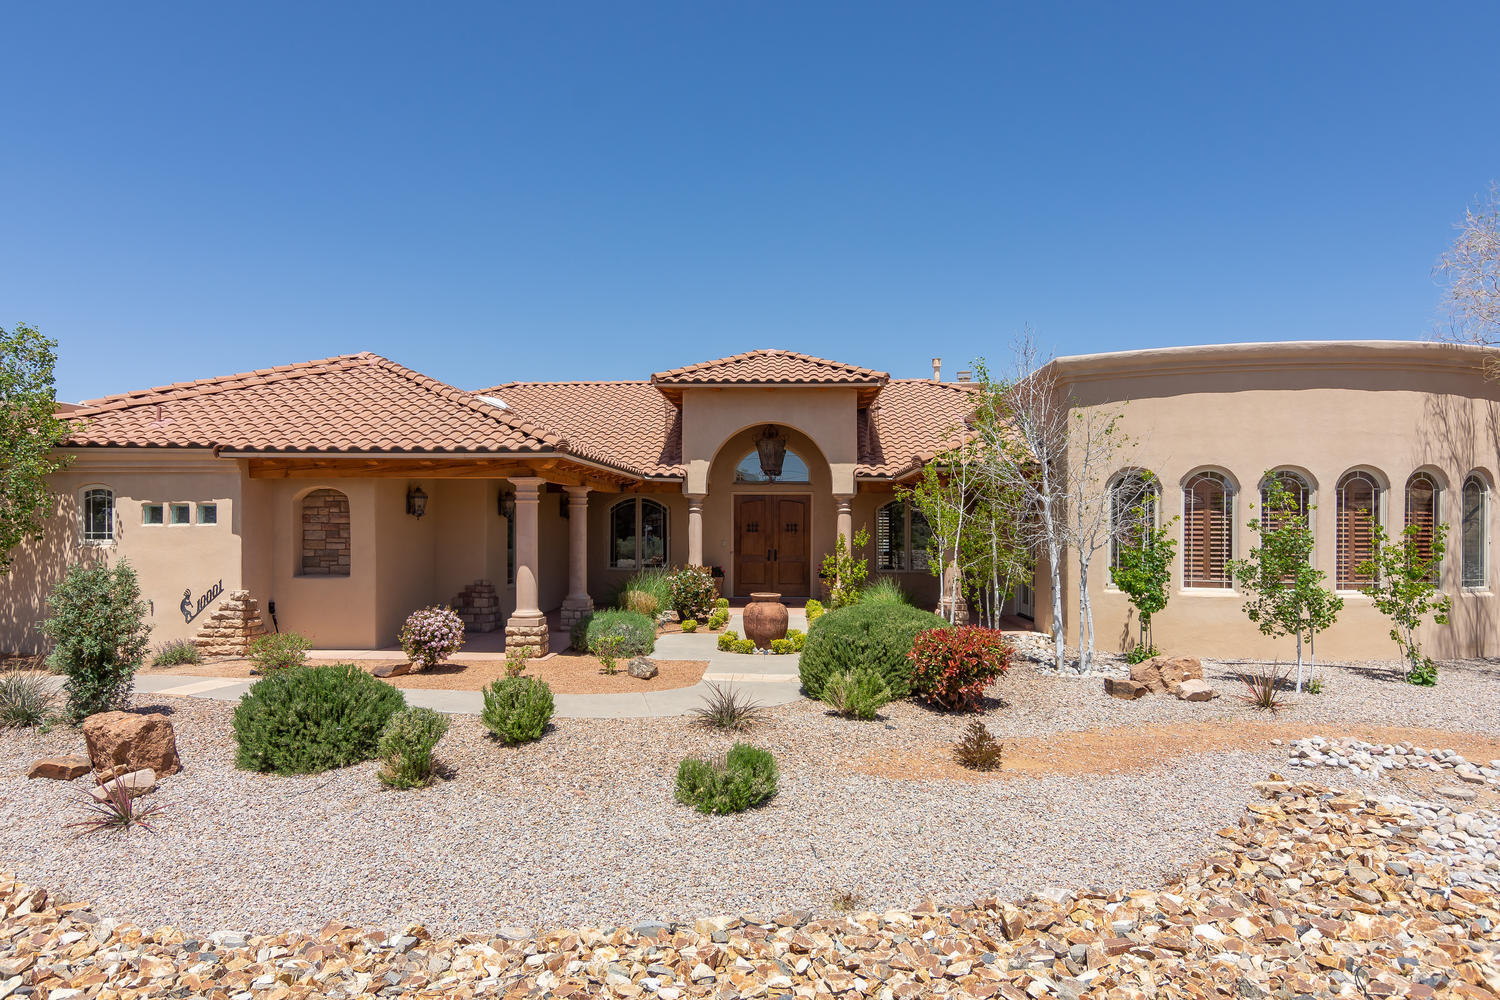 10001 SAN FRANCISCO ROAD NE, ALBUQUERQUE, NM 87122